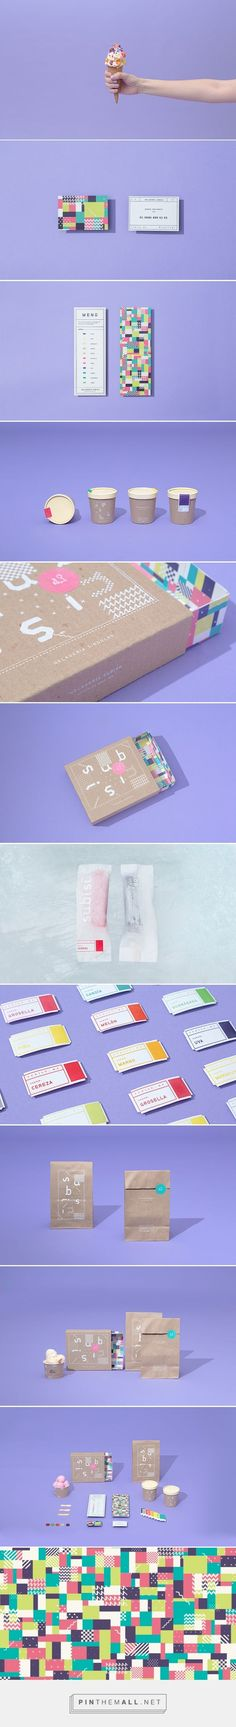 Subisú Ice Cream Branding by Futura | Fivestar Branding – Design and Branding Agency & Inspiration Gallery